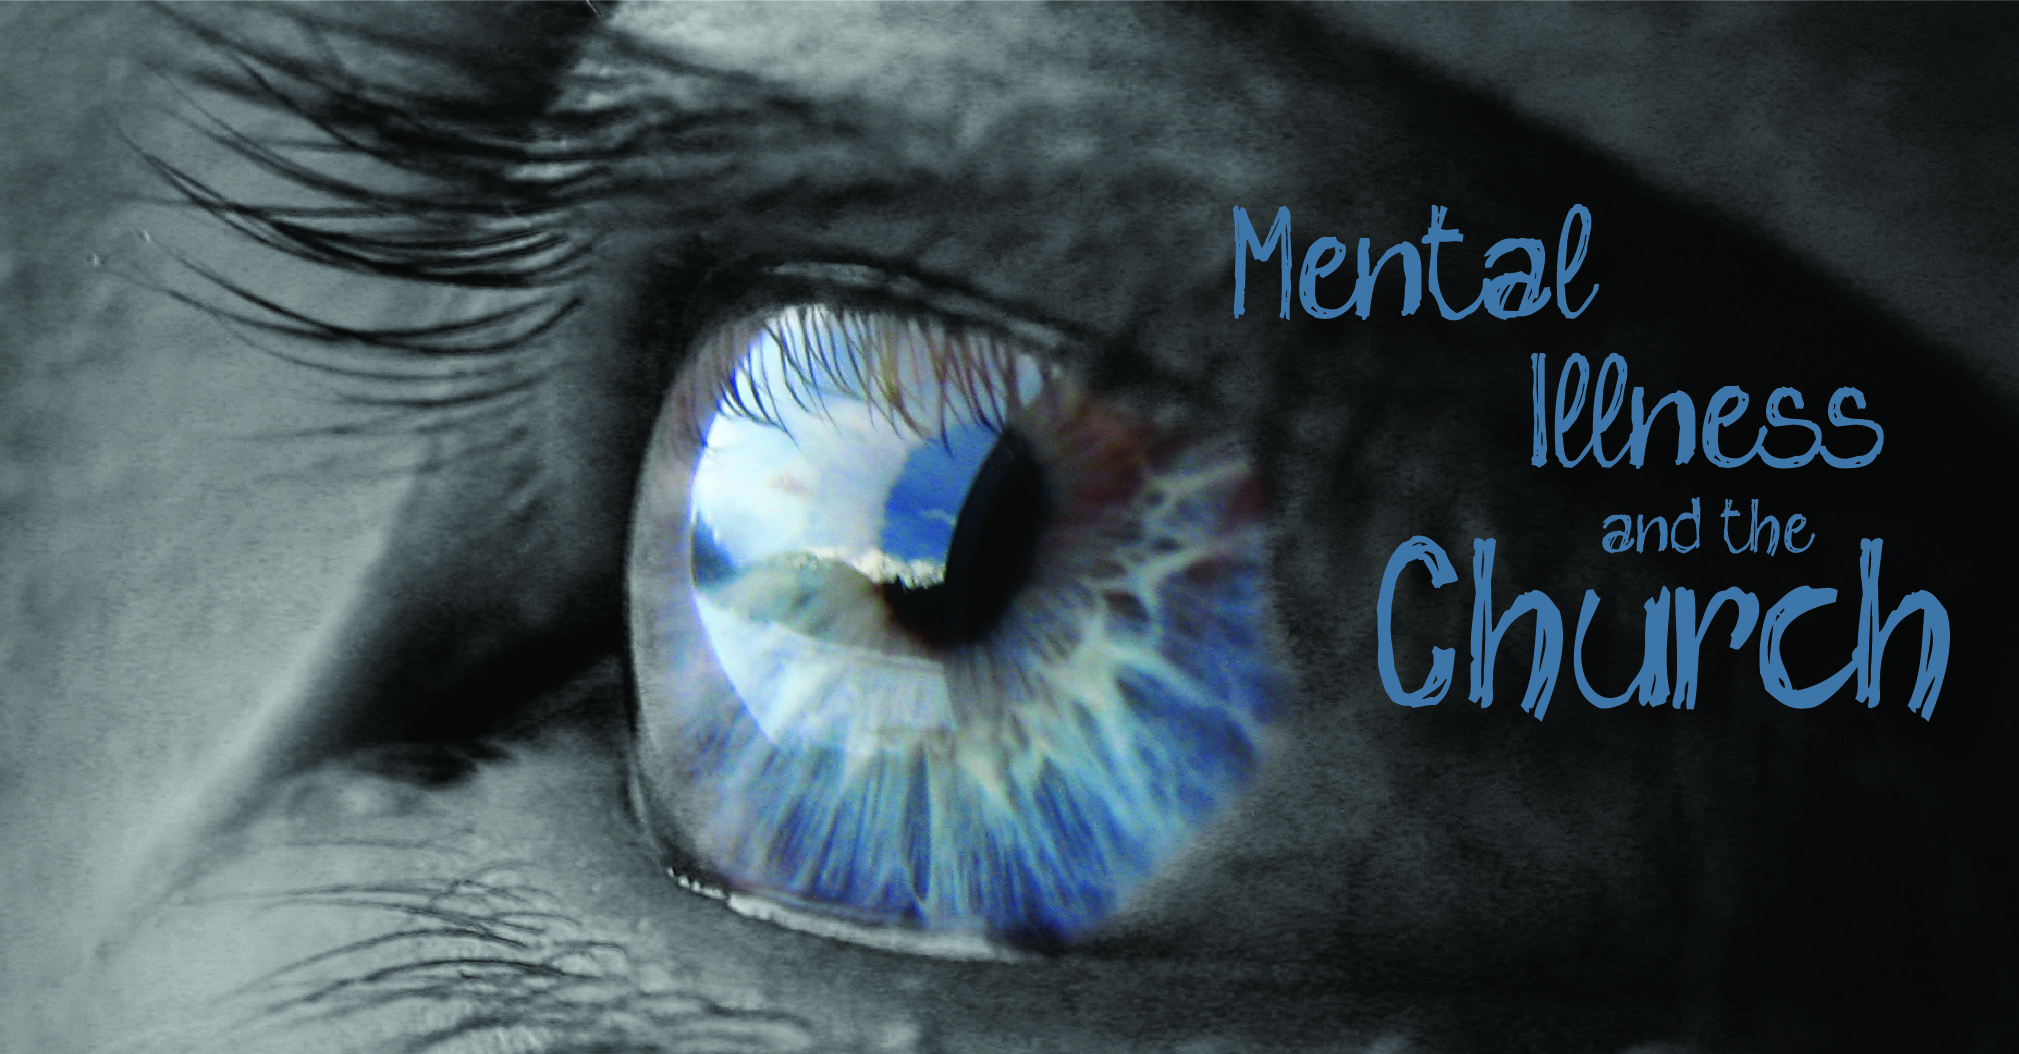 Mental Illness Is Not Weakness Of Character New Life Christian